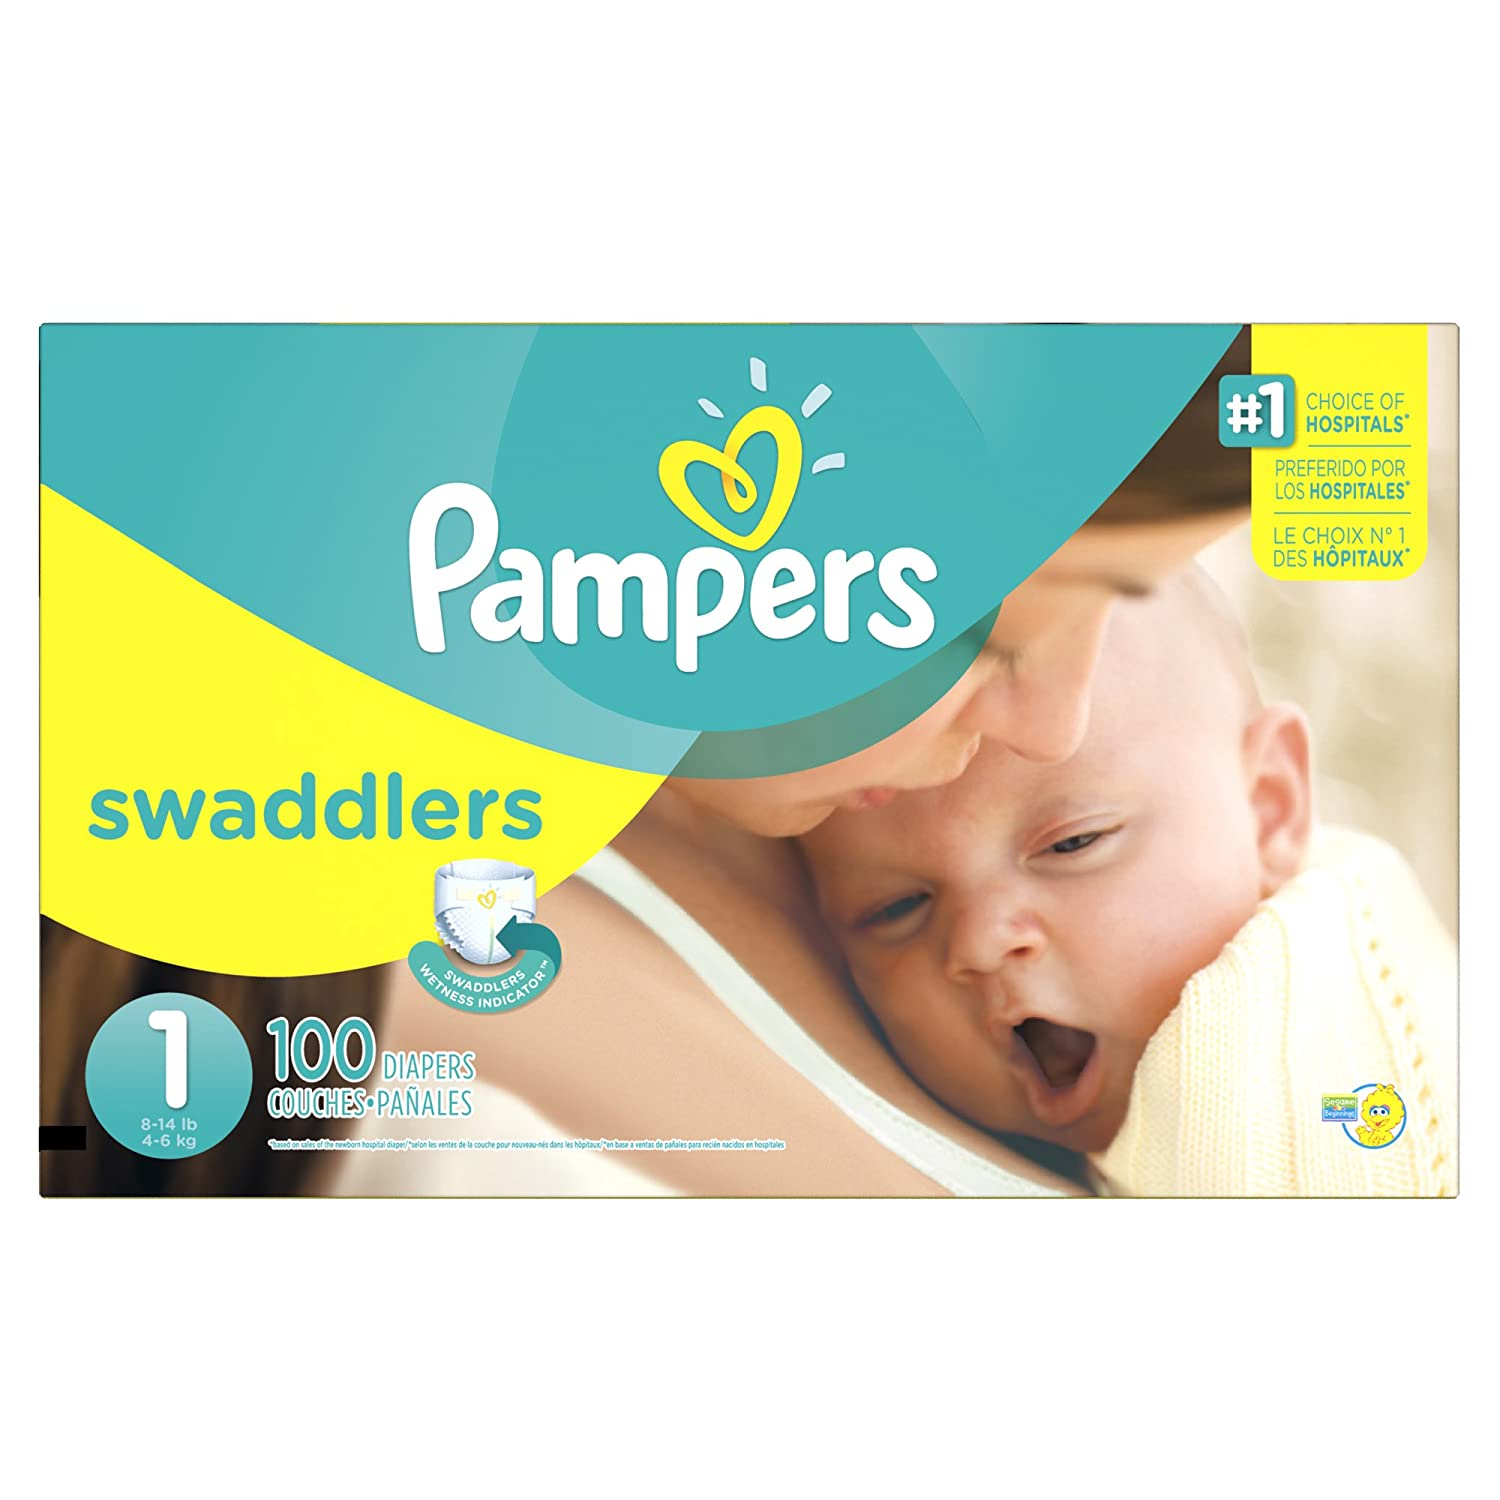 ec89fa42c9 Amazon.com: Pampers Swaddlers Disposable Diapers Newborn Size 1 (8-14 lb),  100 Count, SUPER: Health & Personal Care